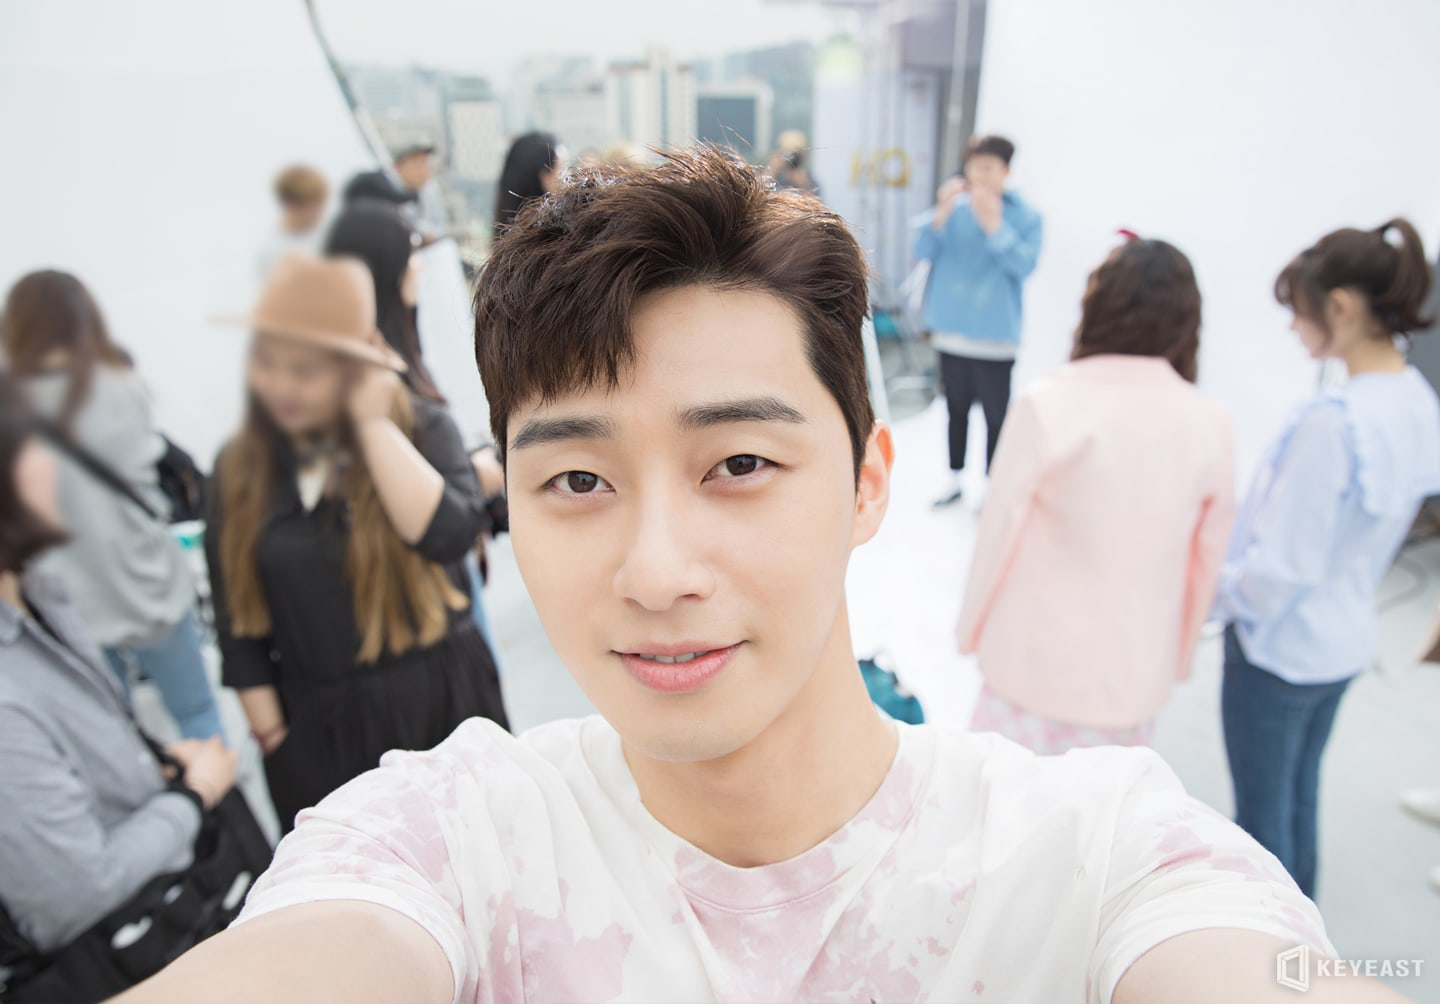 Park Seo Joon Sweetly Replies To His Fans' Comments